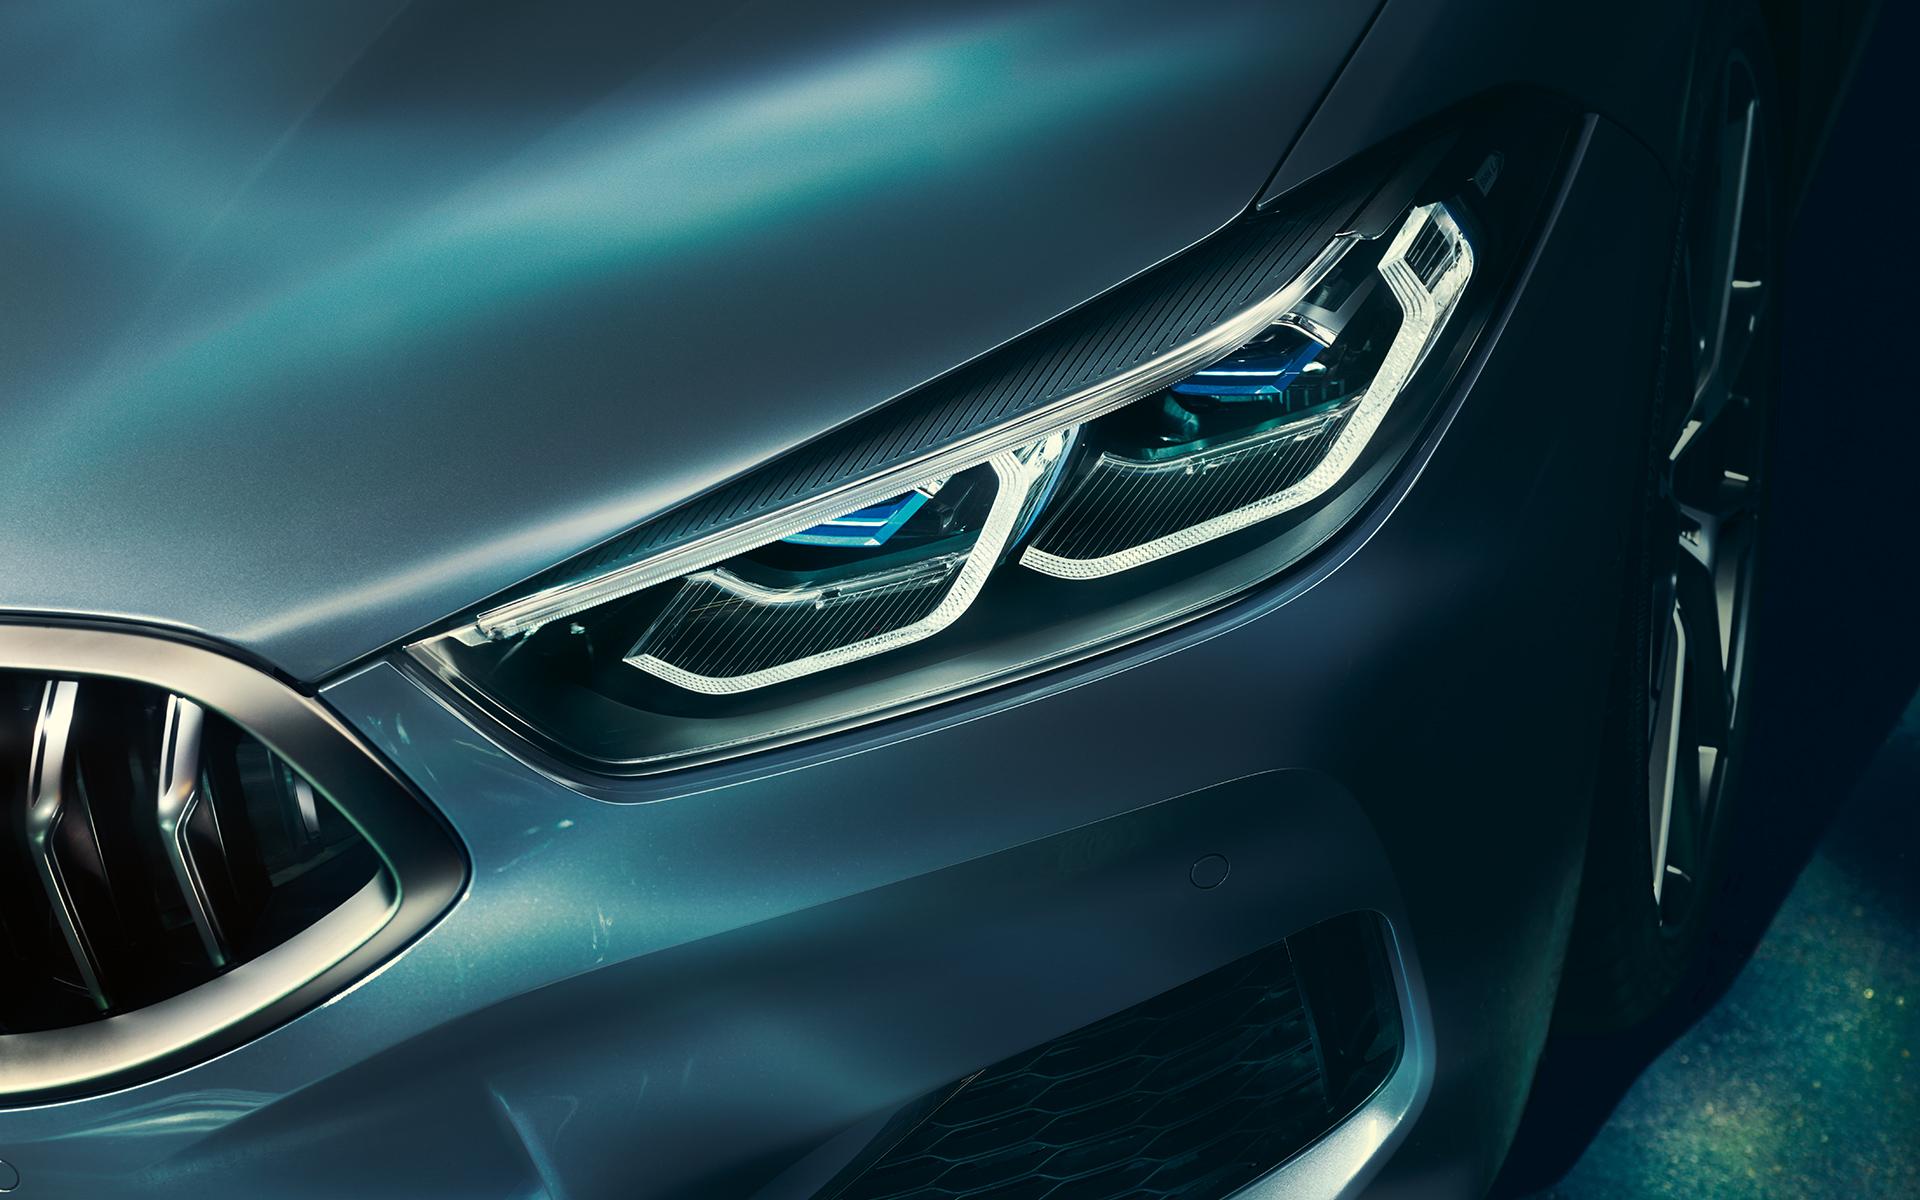 Close-up of the laser lights of the BMW 8 Series Coupé.